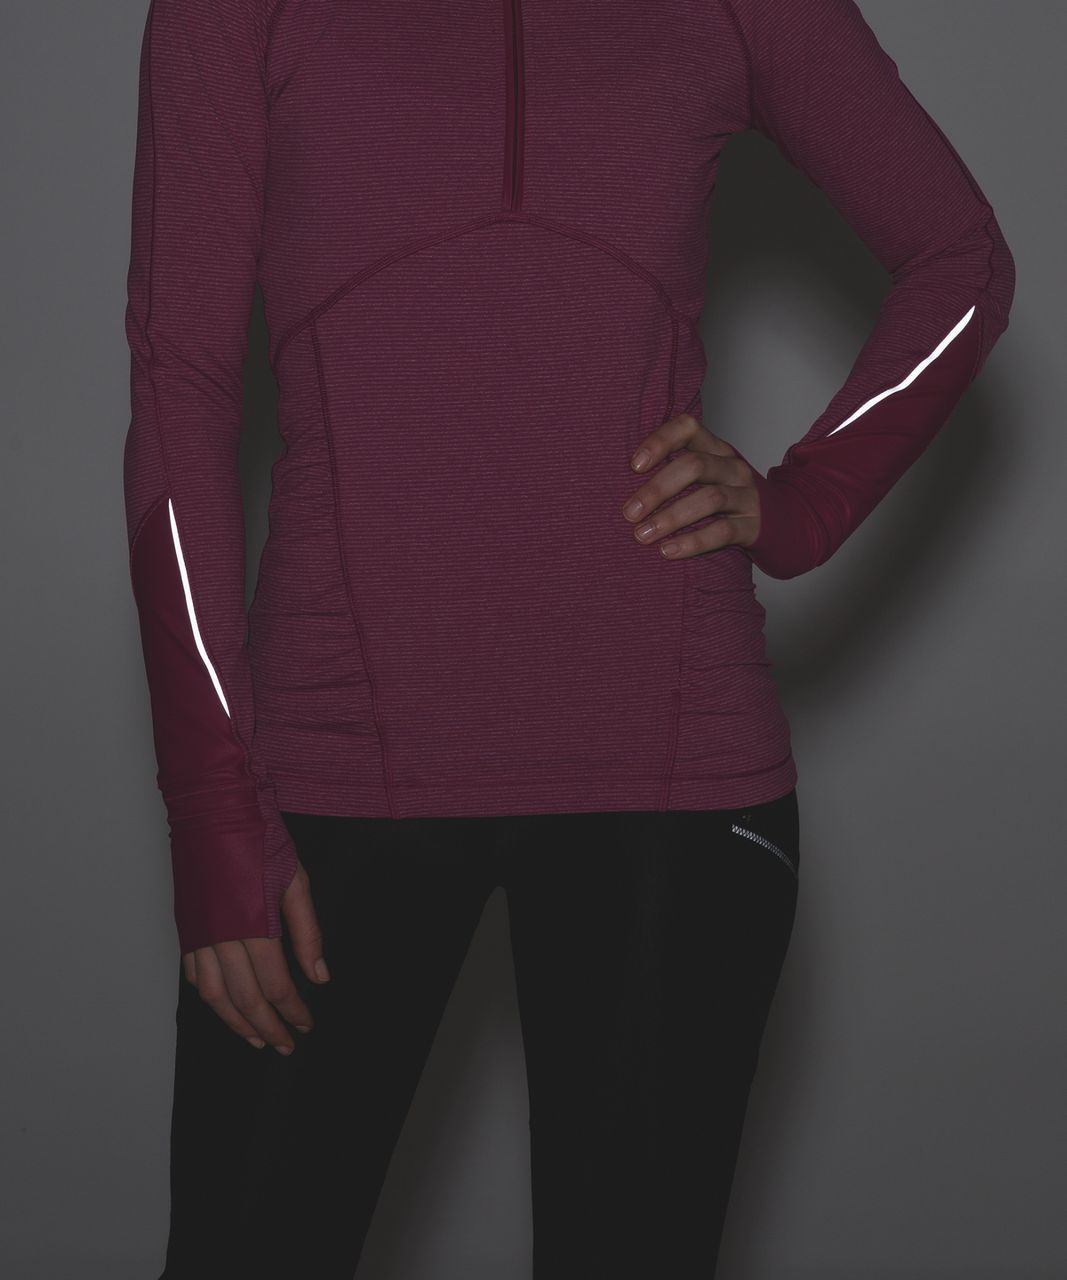 Lululemon Kriss Cross 1/2 Zip - Tonka Stripe Raspberry Heathered Raspberry / Raspberry